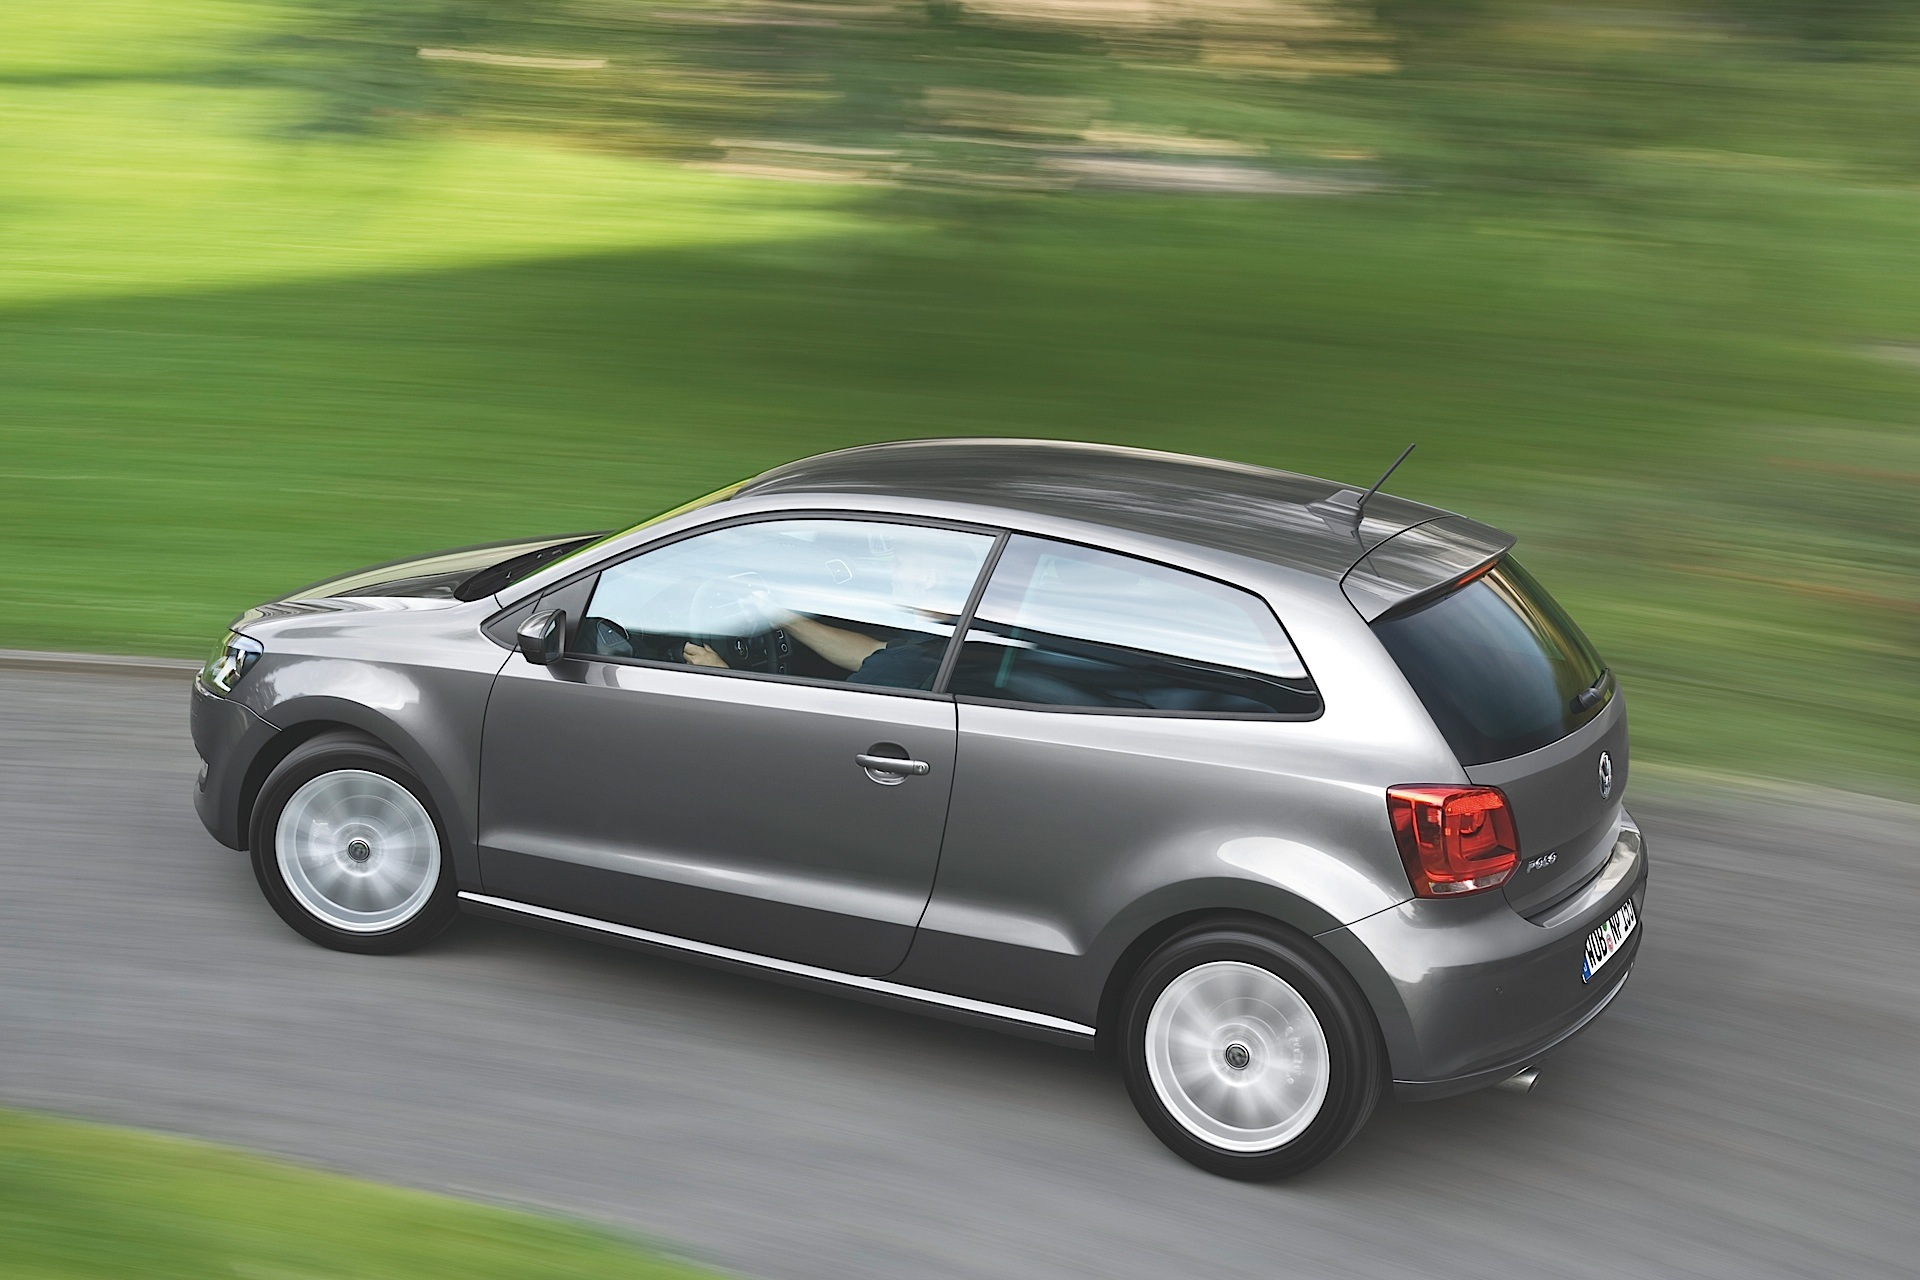 volkswagen polo 3 doors specs 2009 2010 2011 2012 2013 2014 autoevolution. Black Bedroom Furniture Sets. Home Design Ideas